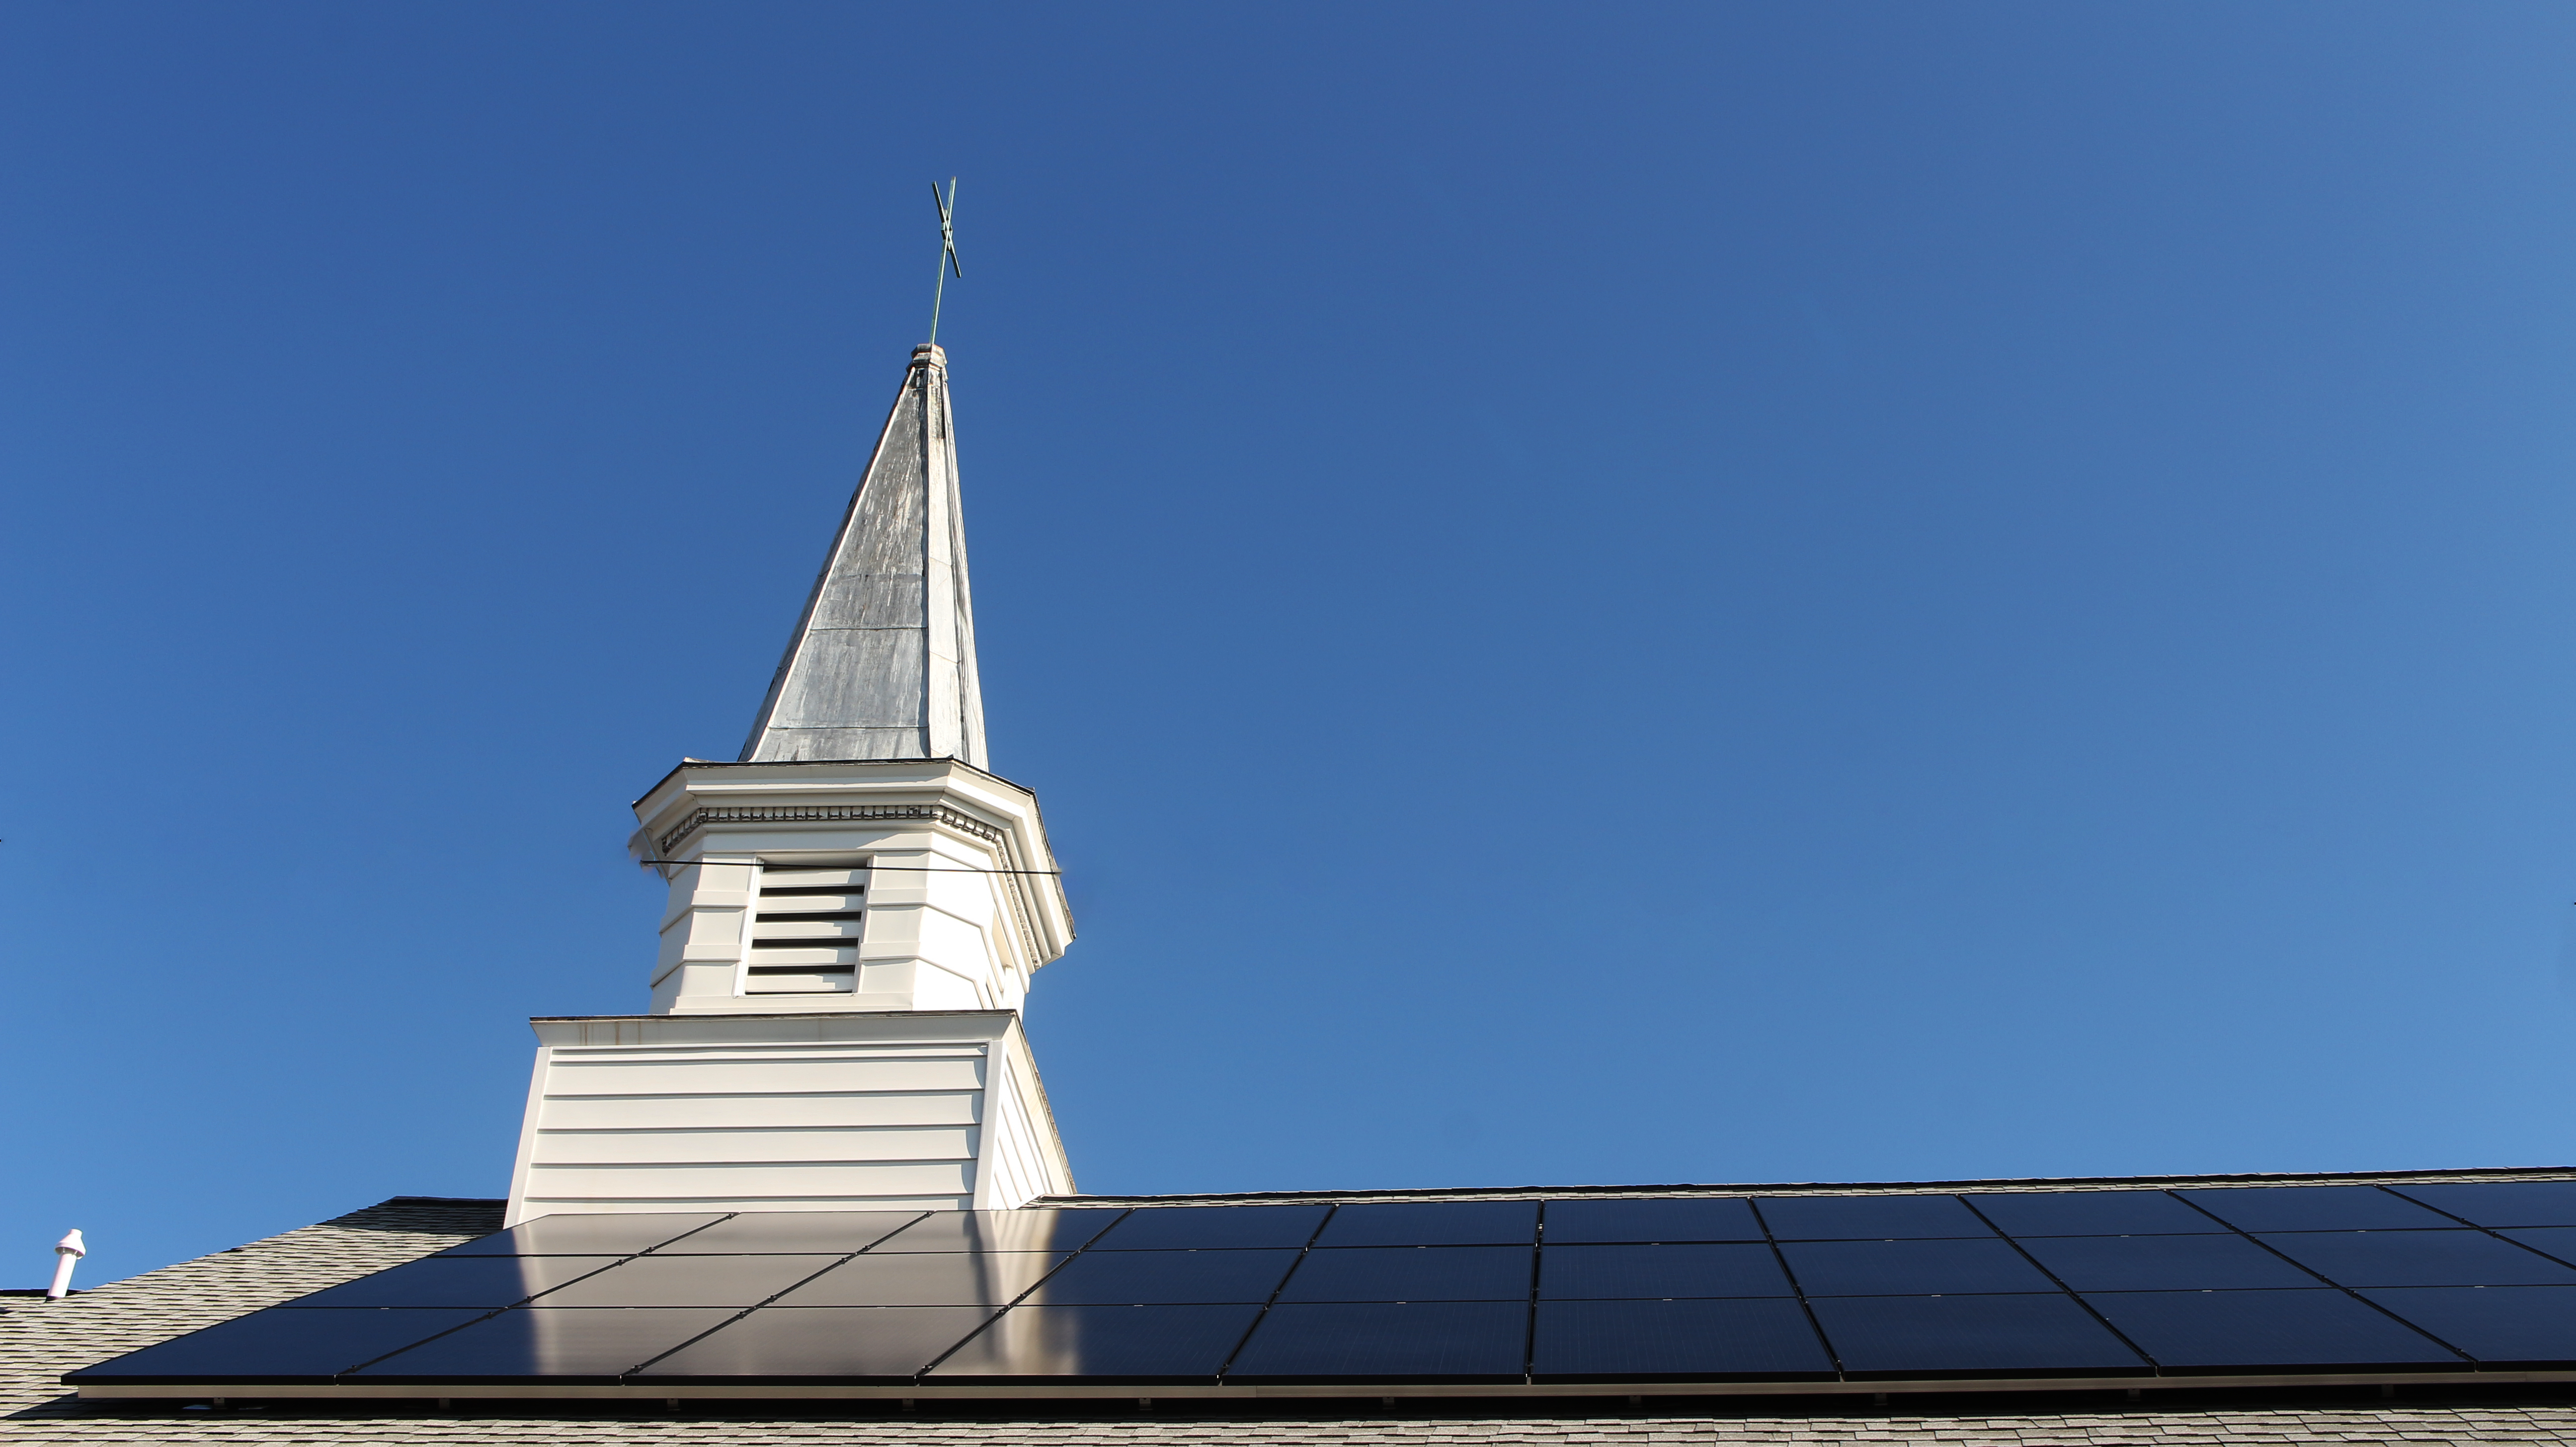 Join our next webinar: No-Cost Solar for Faith-Based Organizations